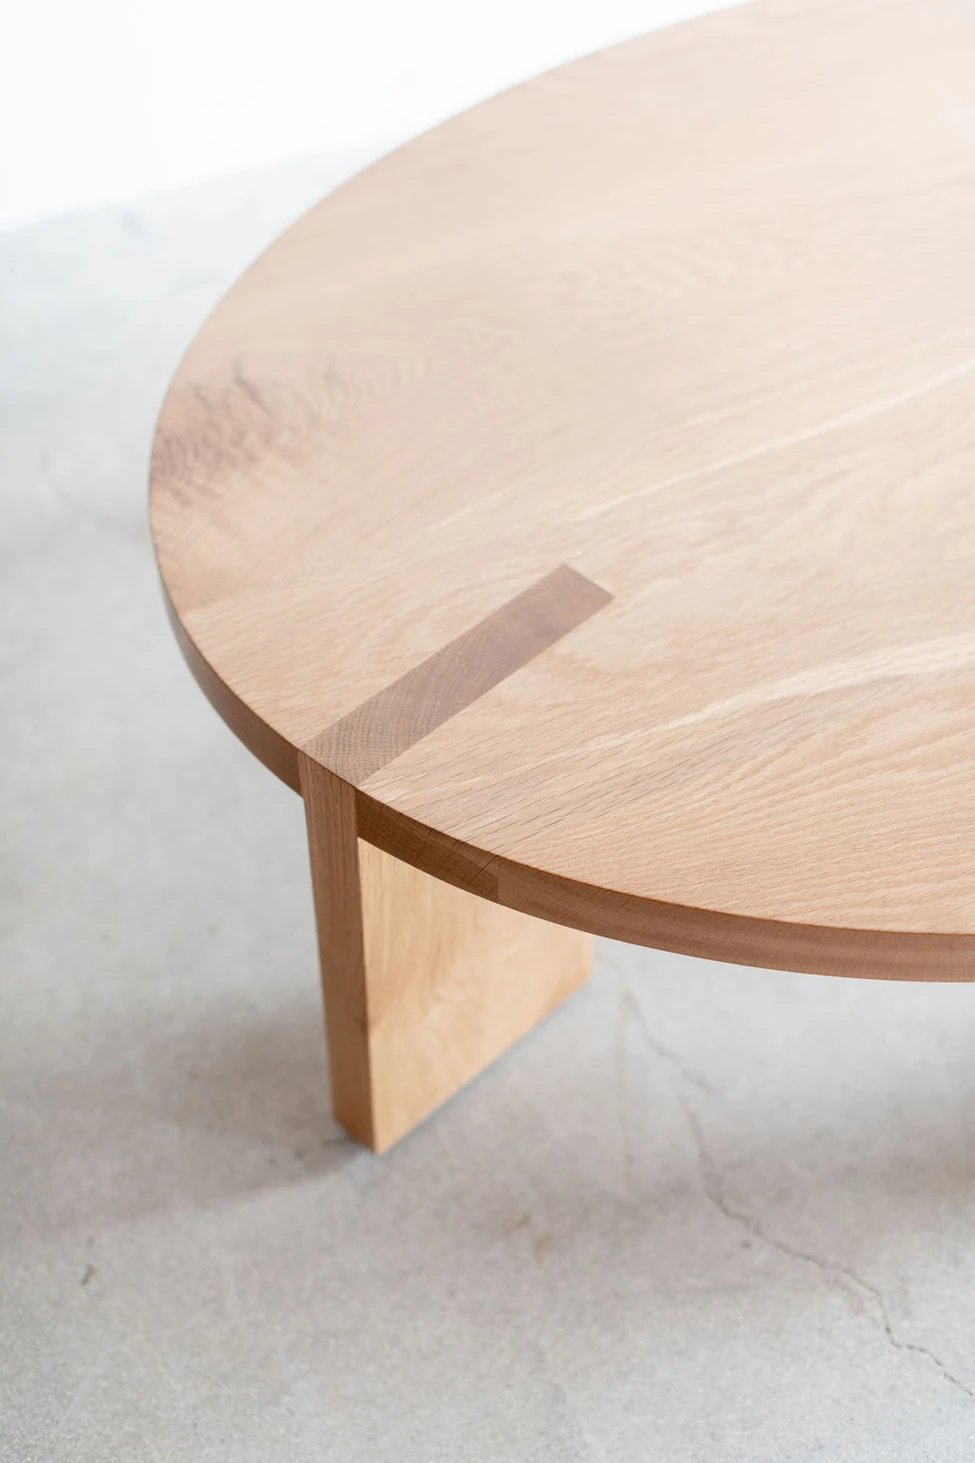 Pin On Coffee Table Nesting Tables [ 1463 x 975 Pixel ]